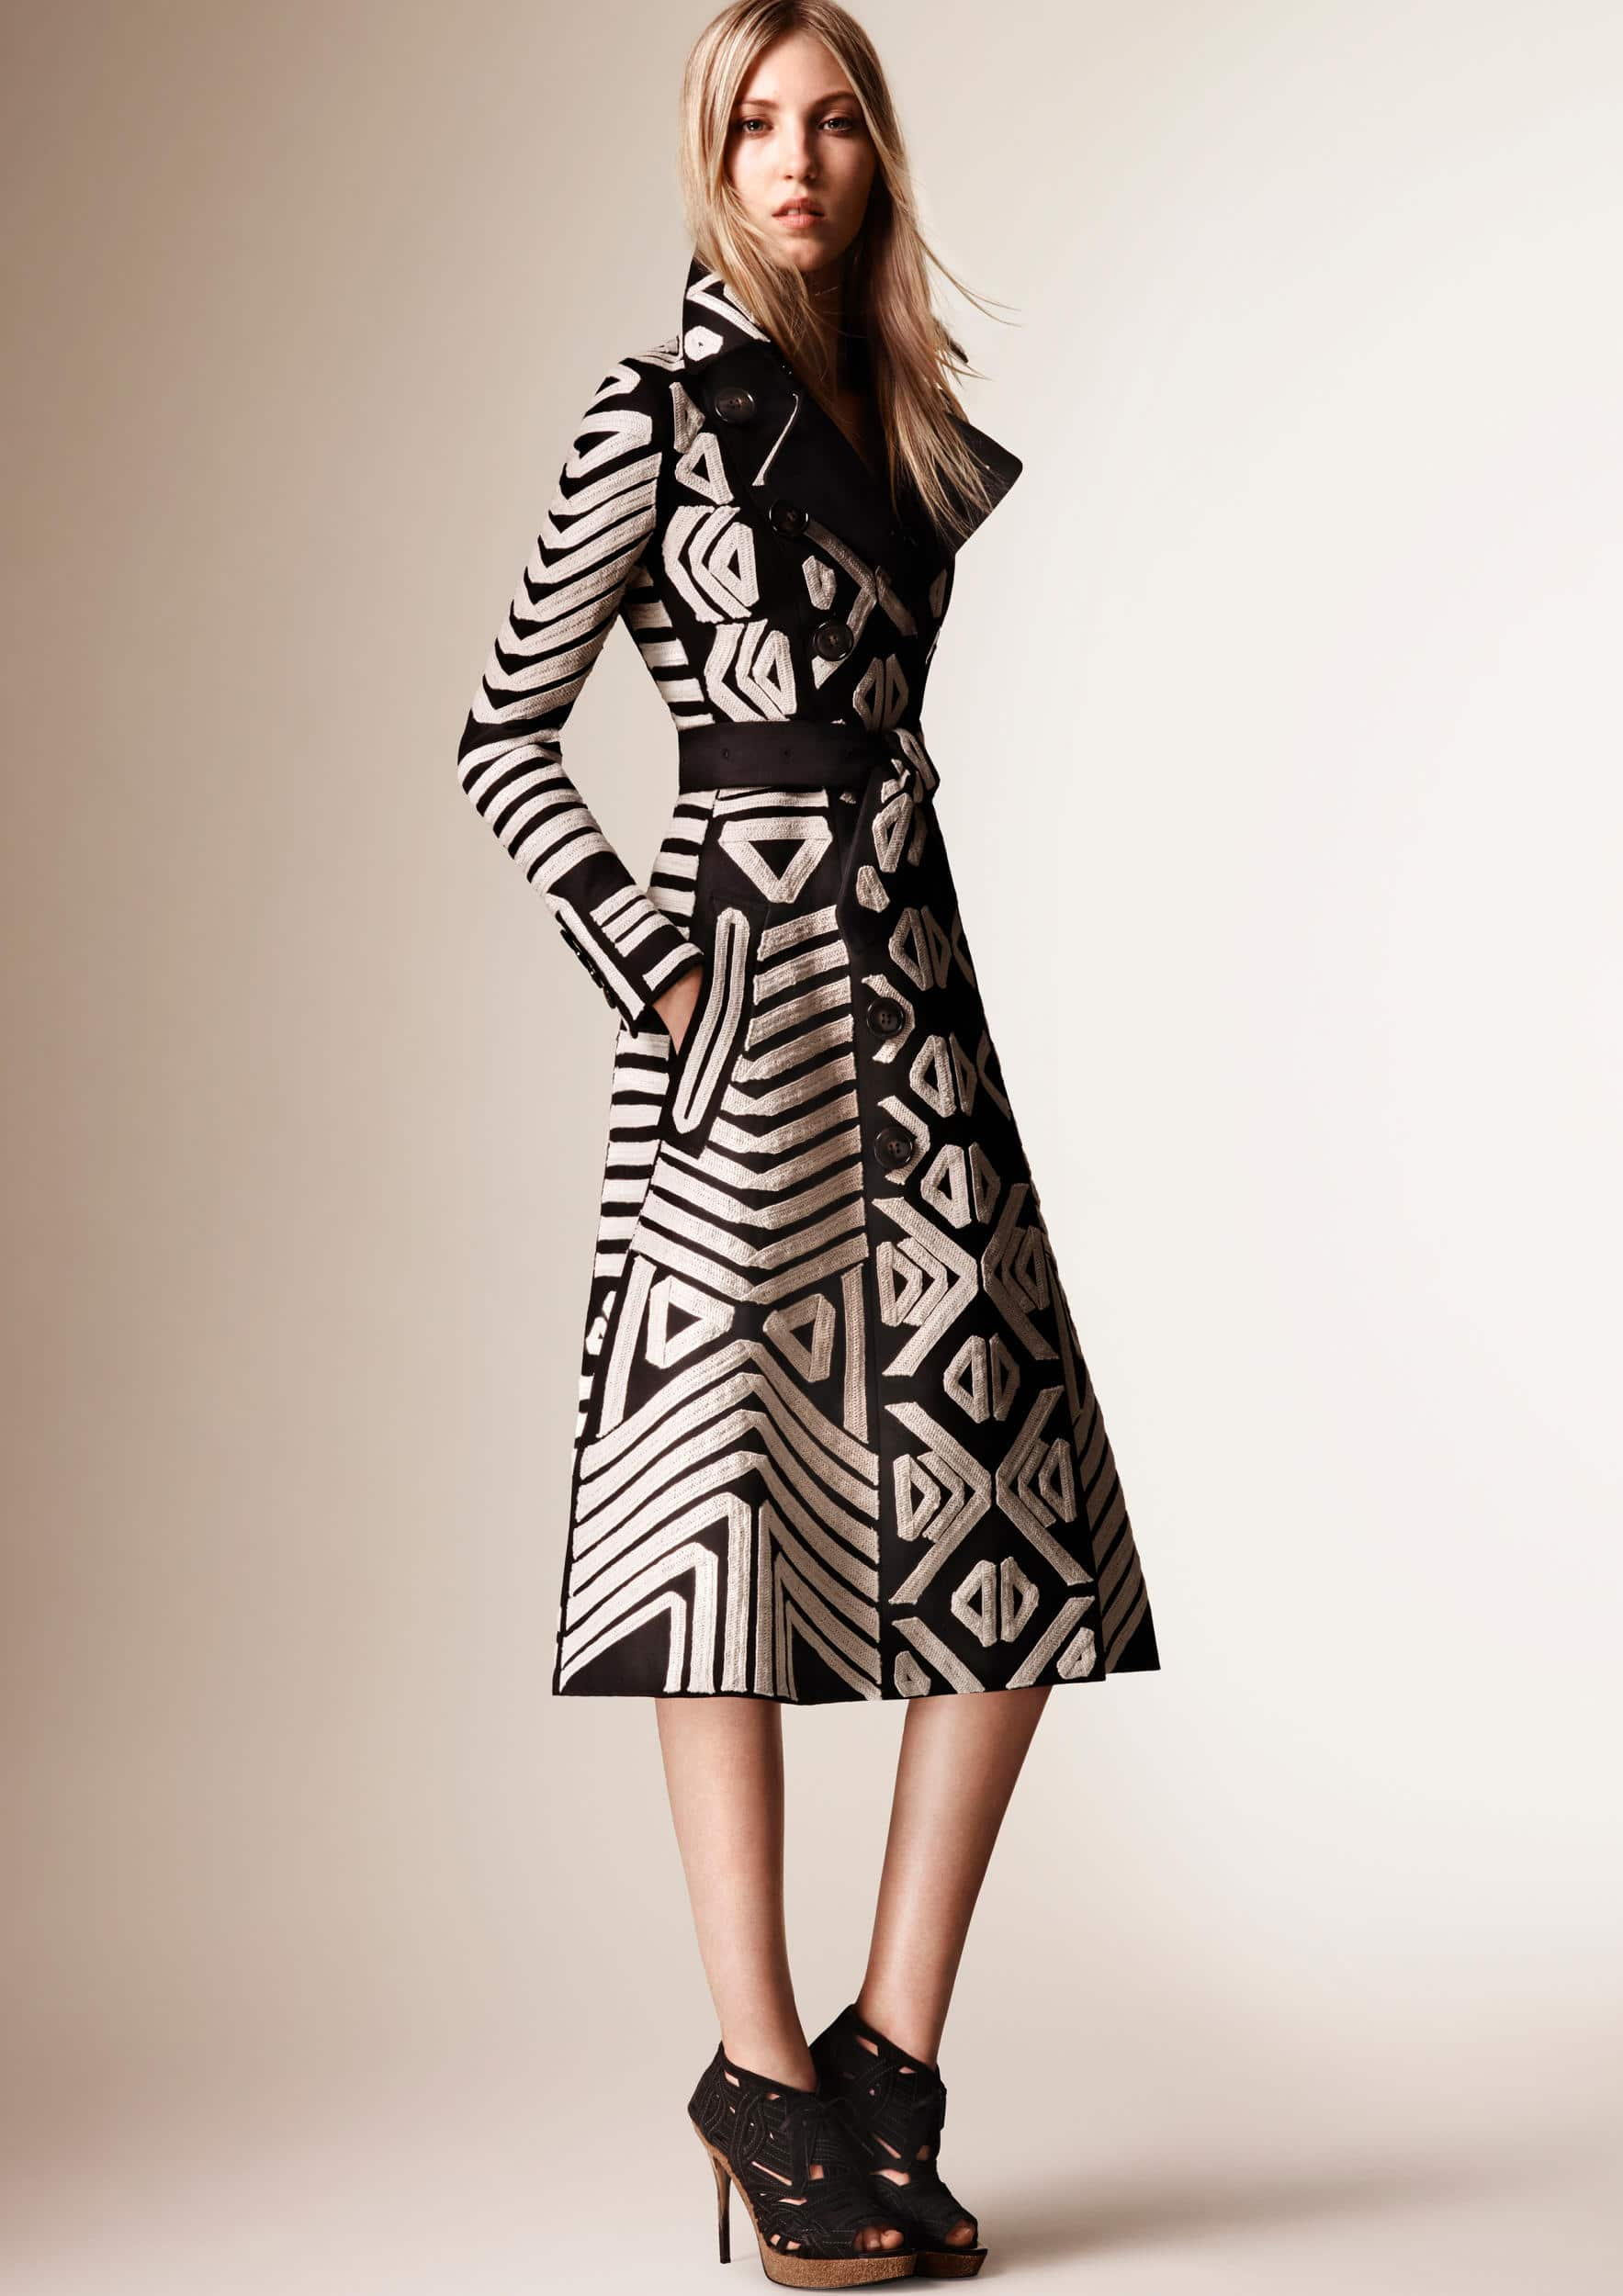 burberry-resort-collection-2016-0